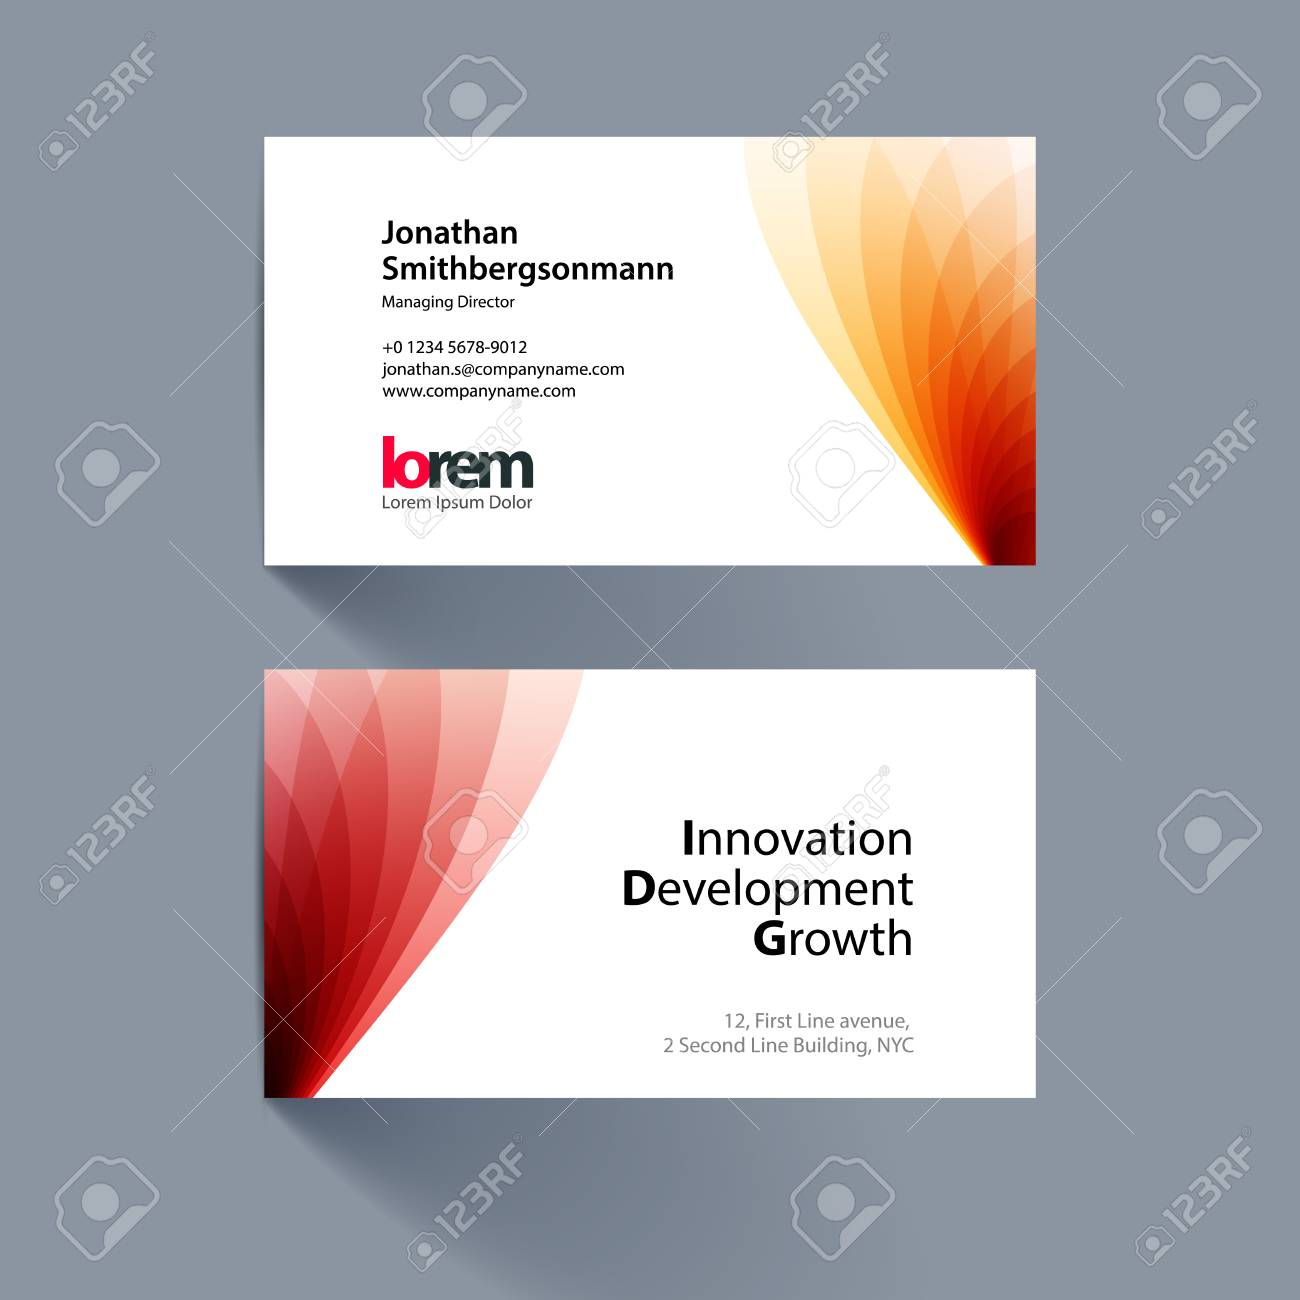 Vector Business Card Template With Red Soft Shapes And Waves ...